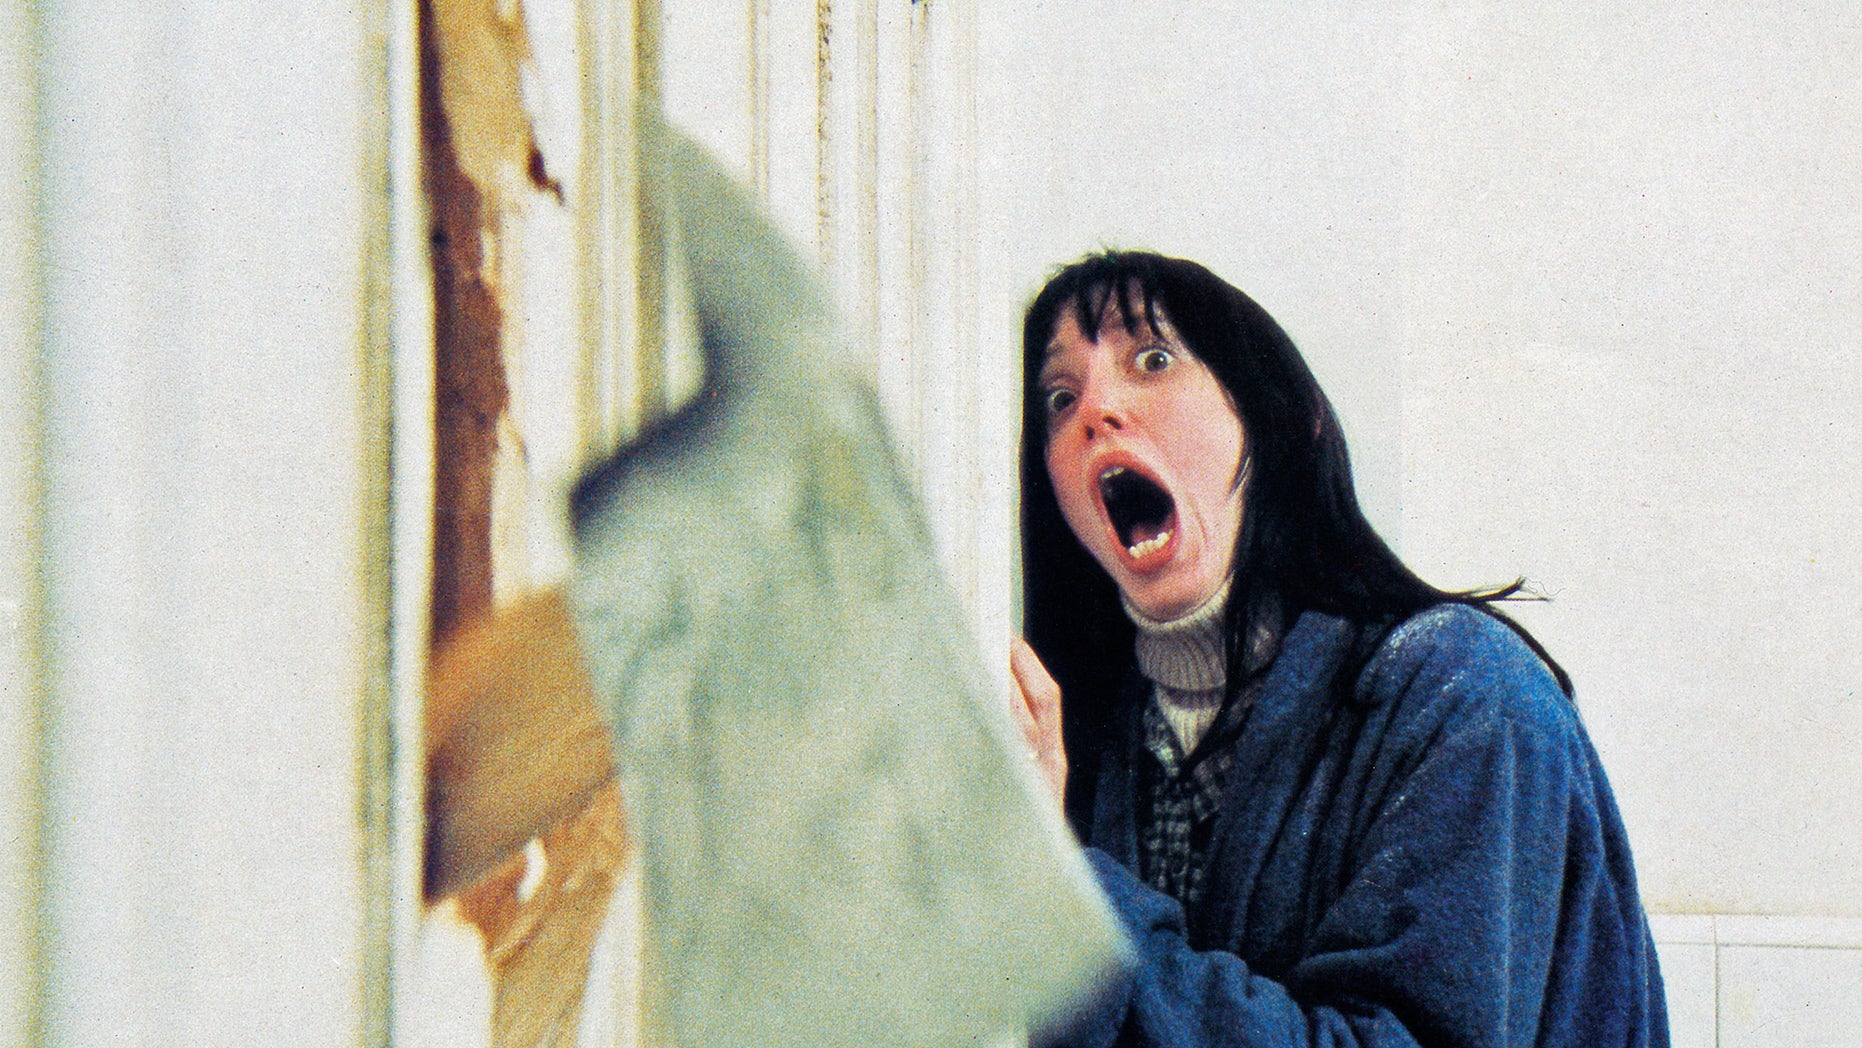 actress Shelley Duvall, recoils in shock as her husband chops through the bathroom door with a fire axe in a scene from 'The Shining', directed by Stanley Kubrick